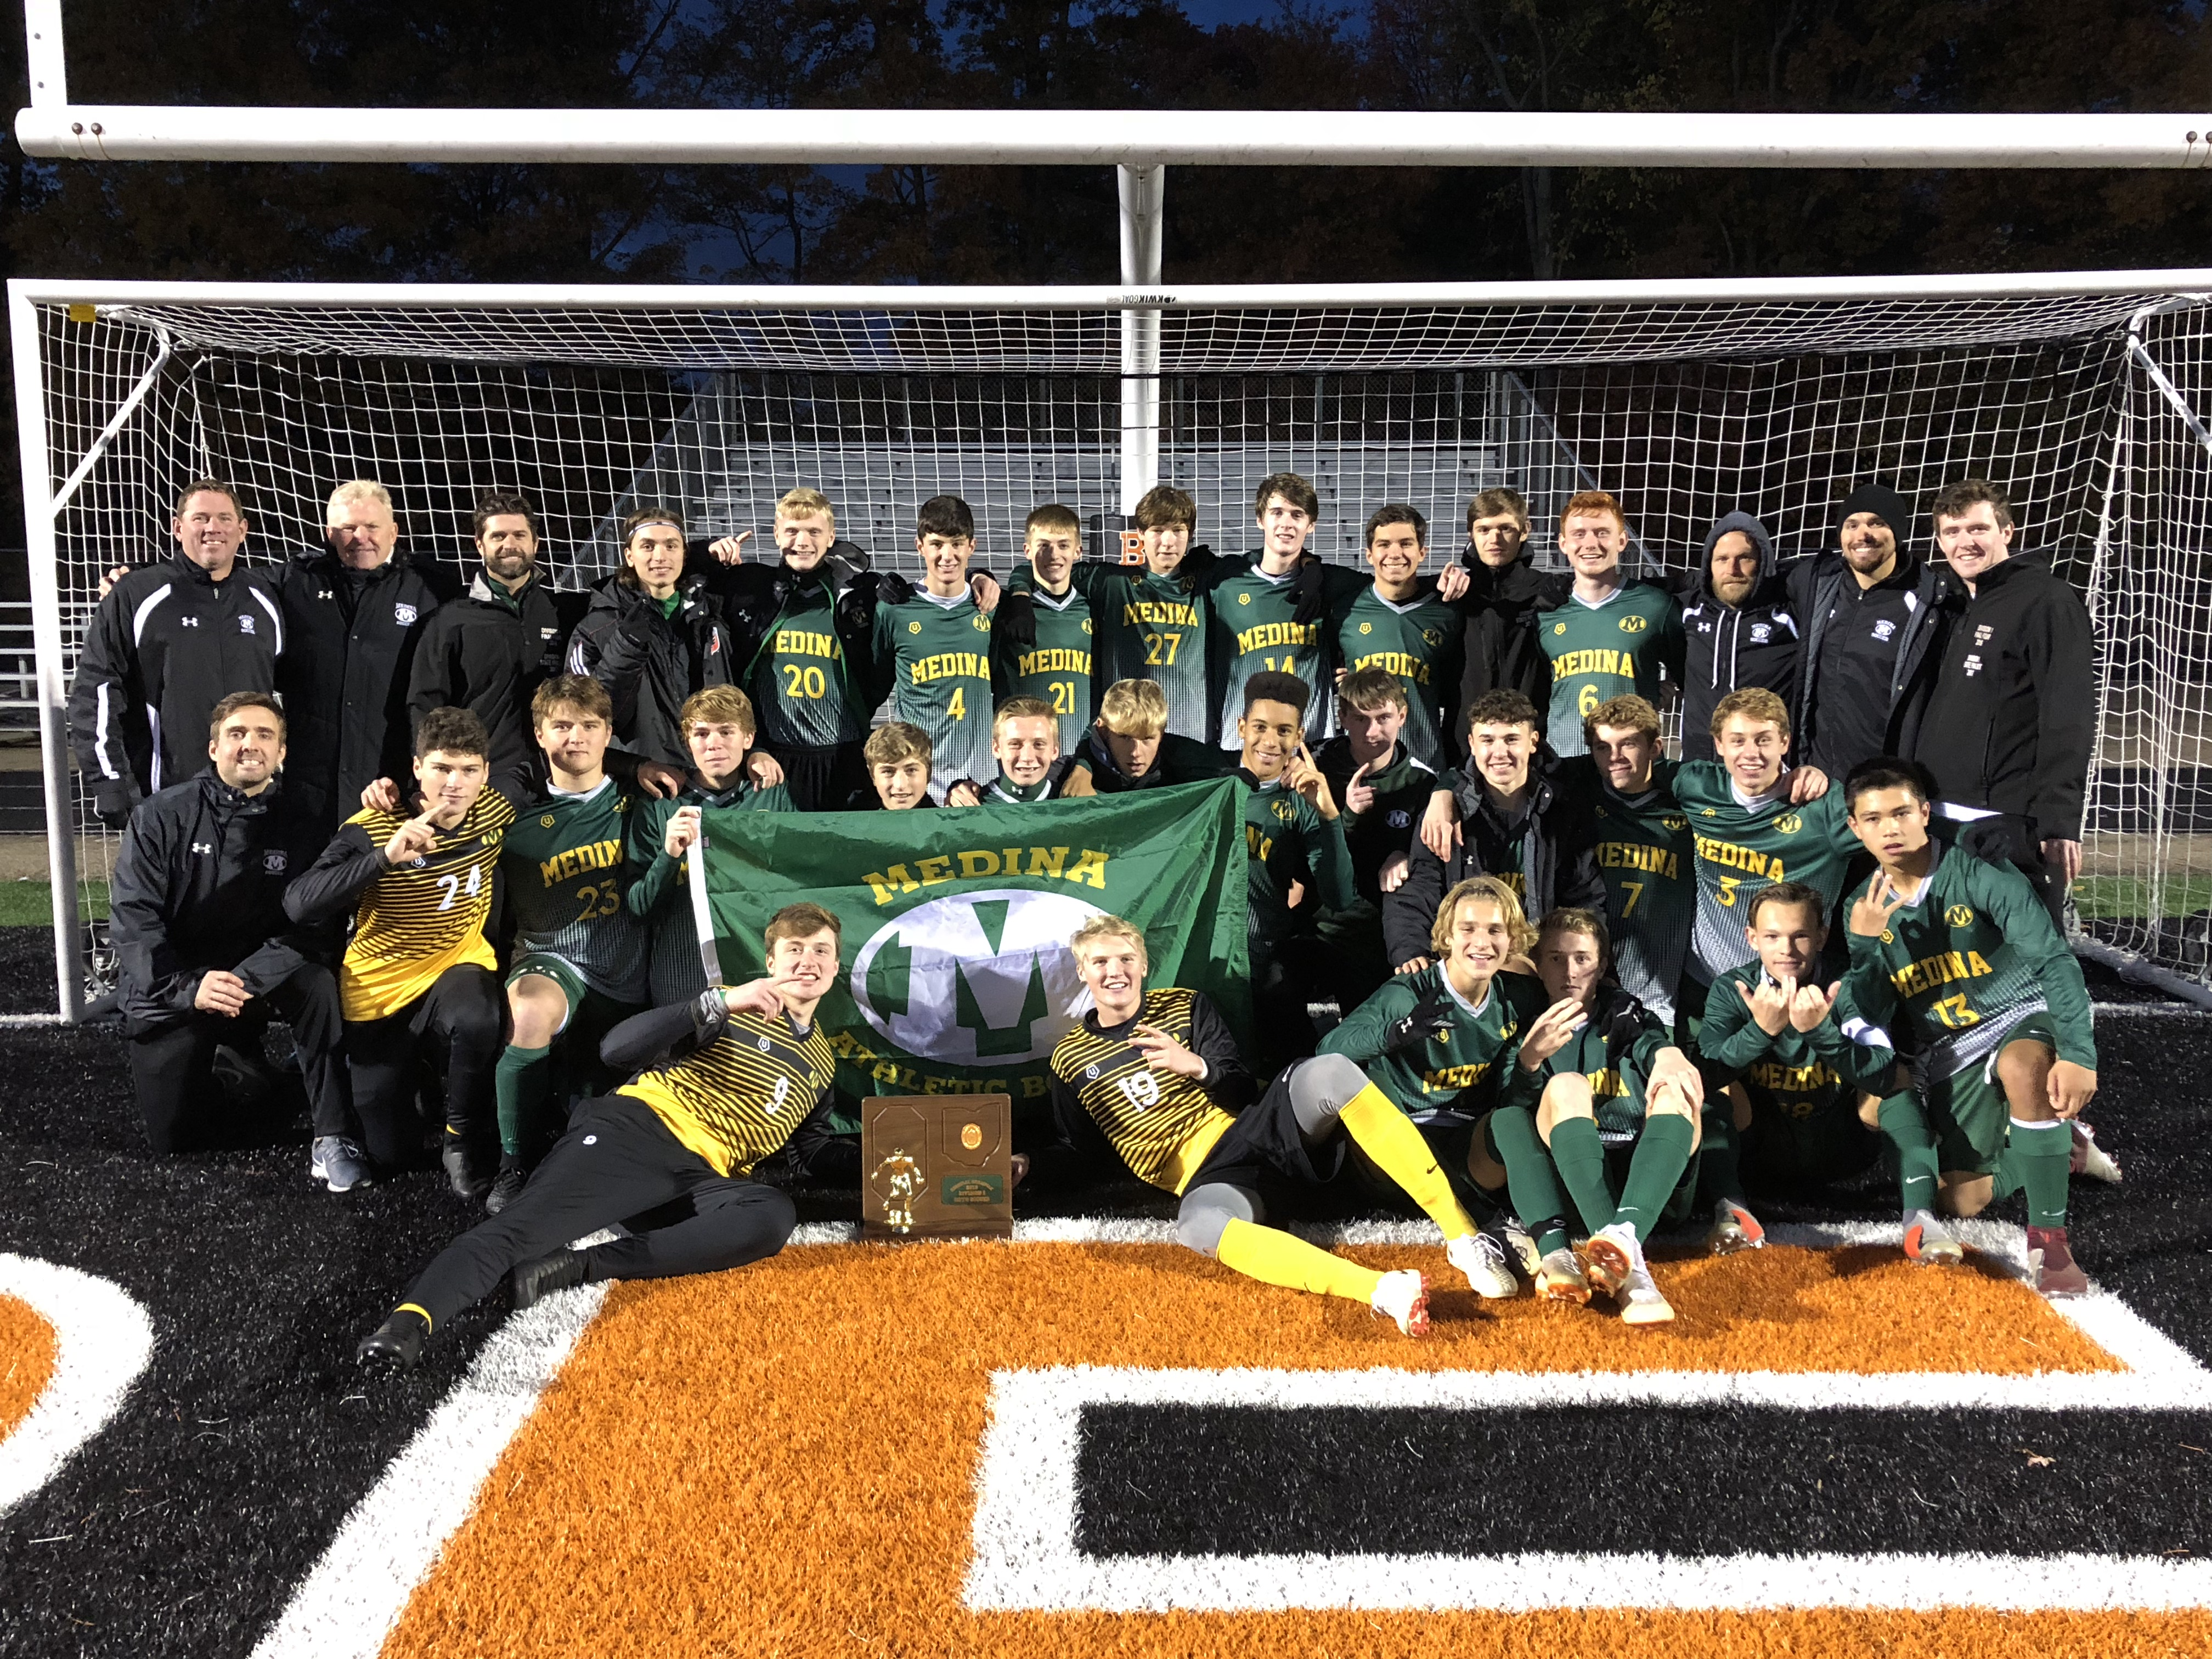 Boys Soccer Team Returns to the State Championship Game for the 2nd Year in a Row